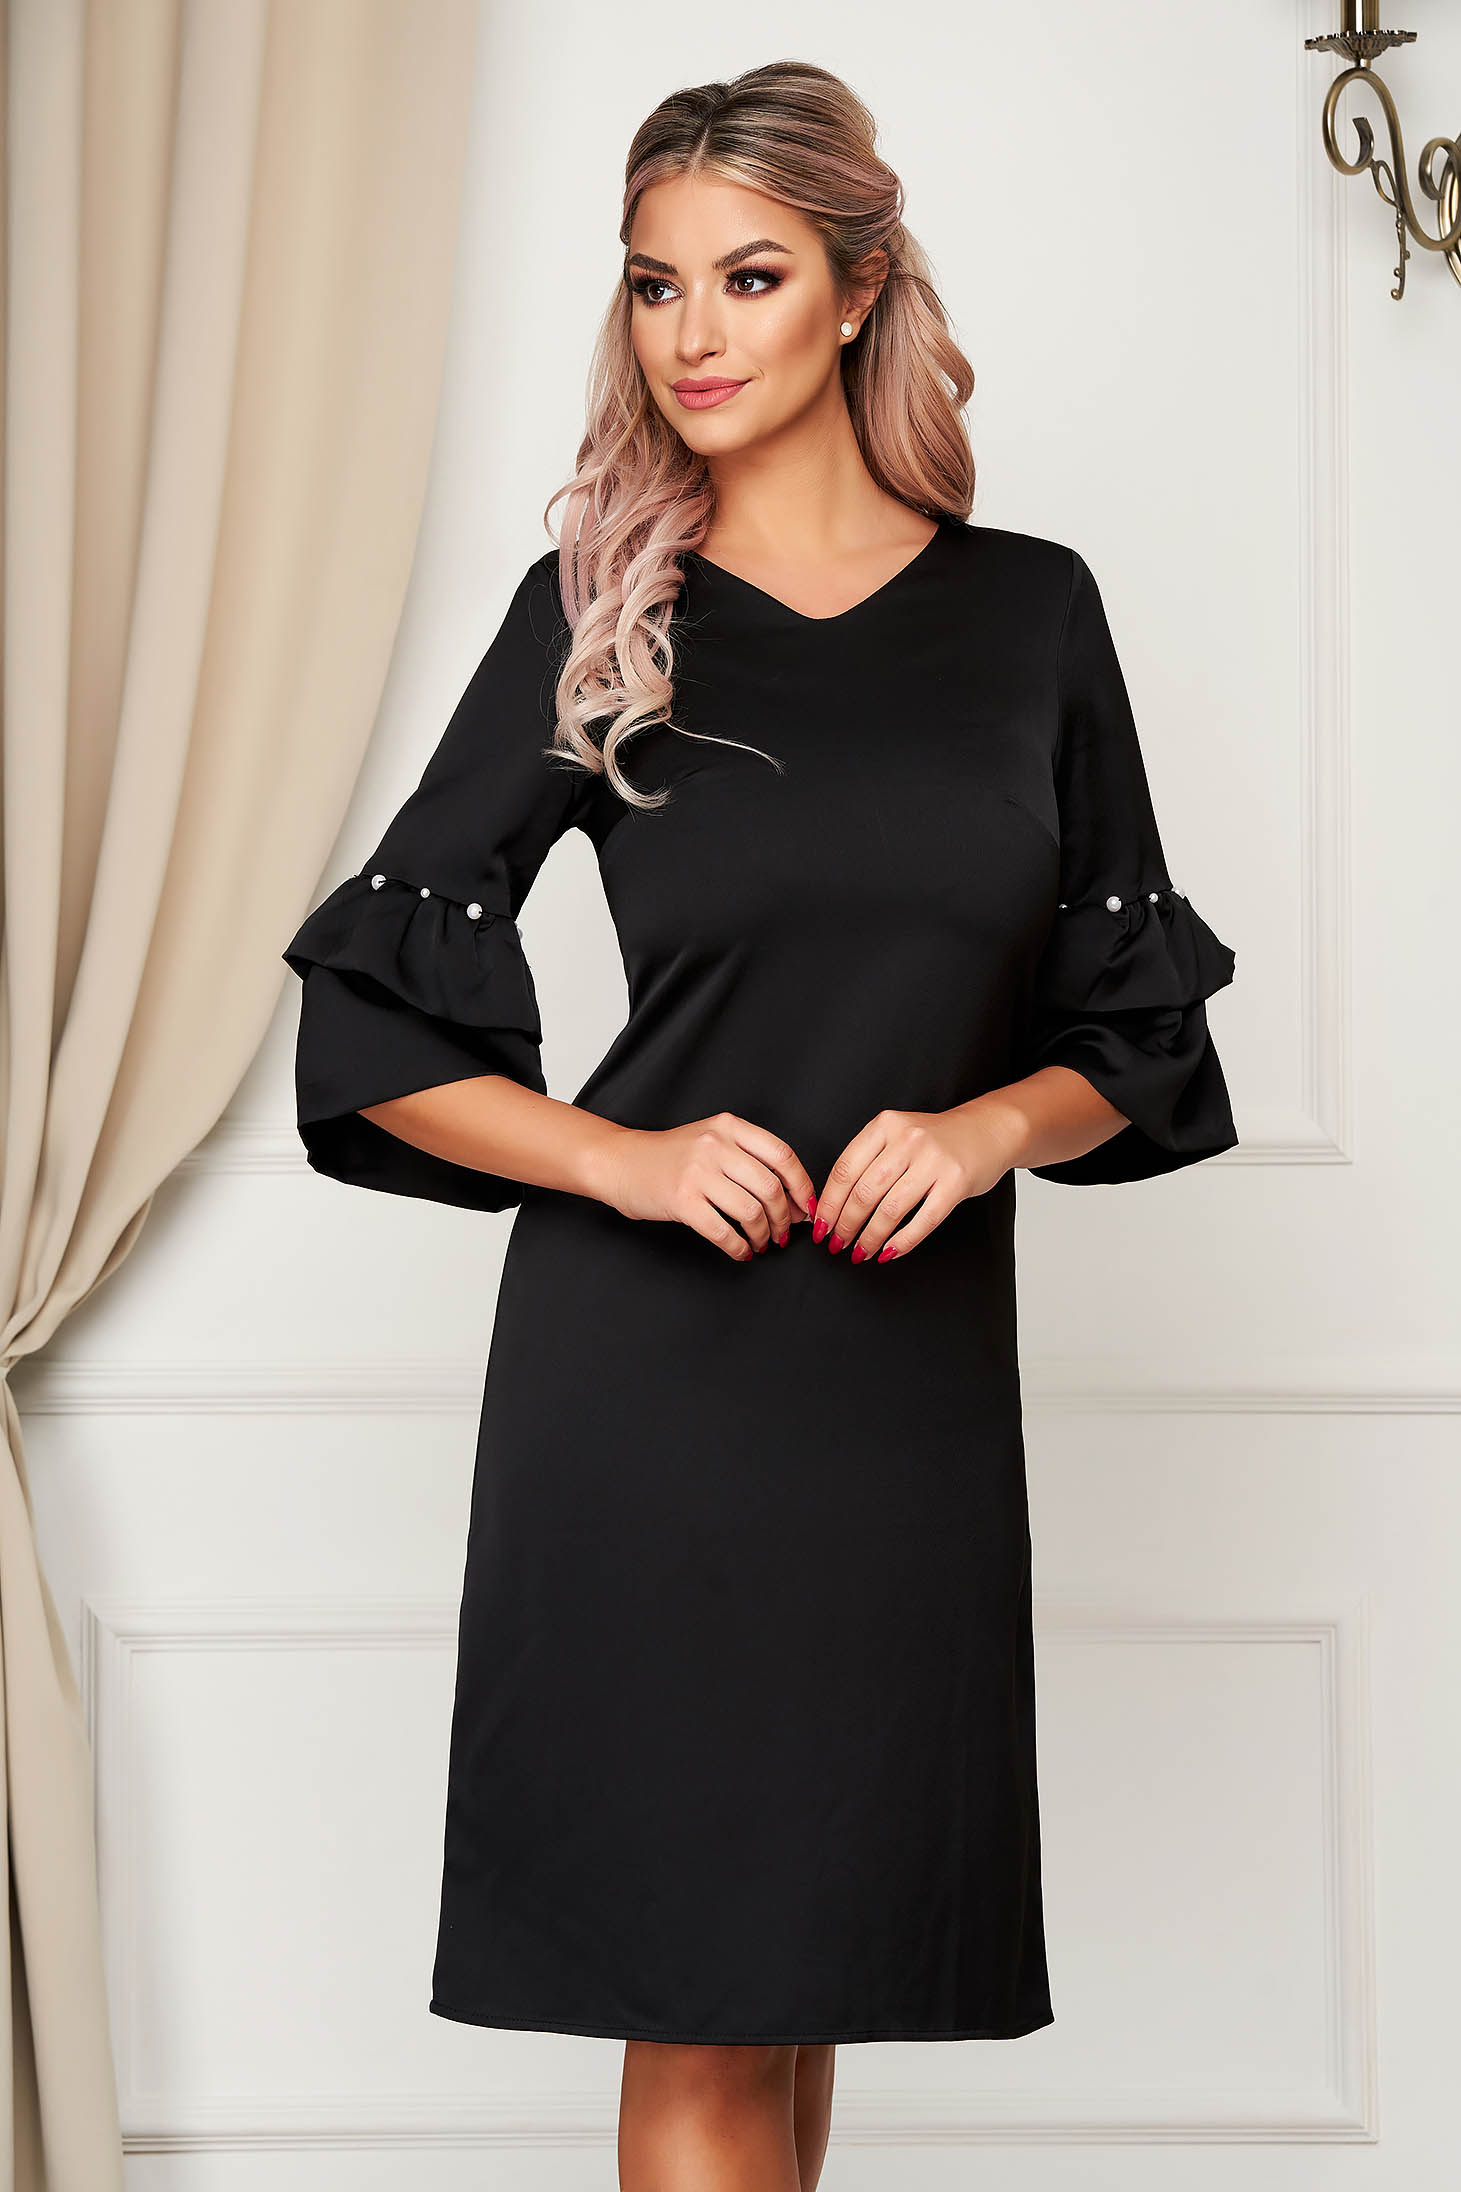 Black dress elegant a-line with bell sleeve with pearls